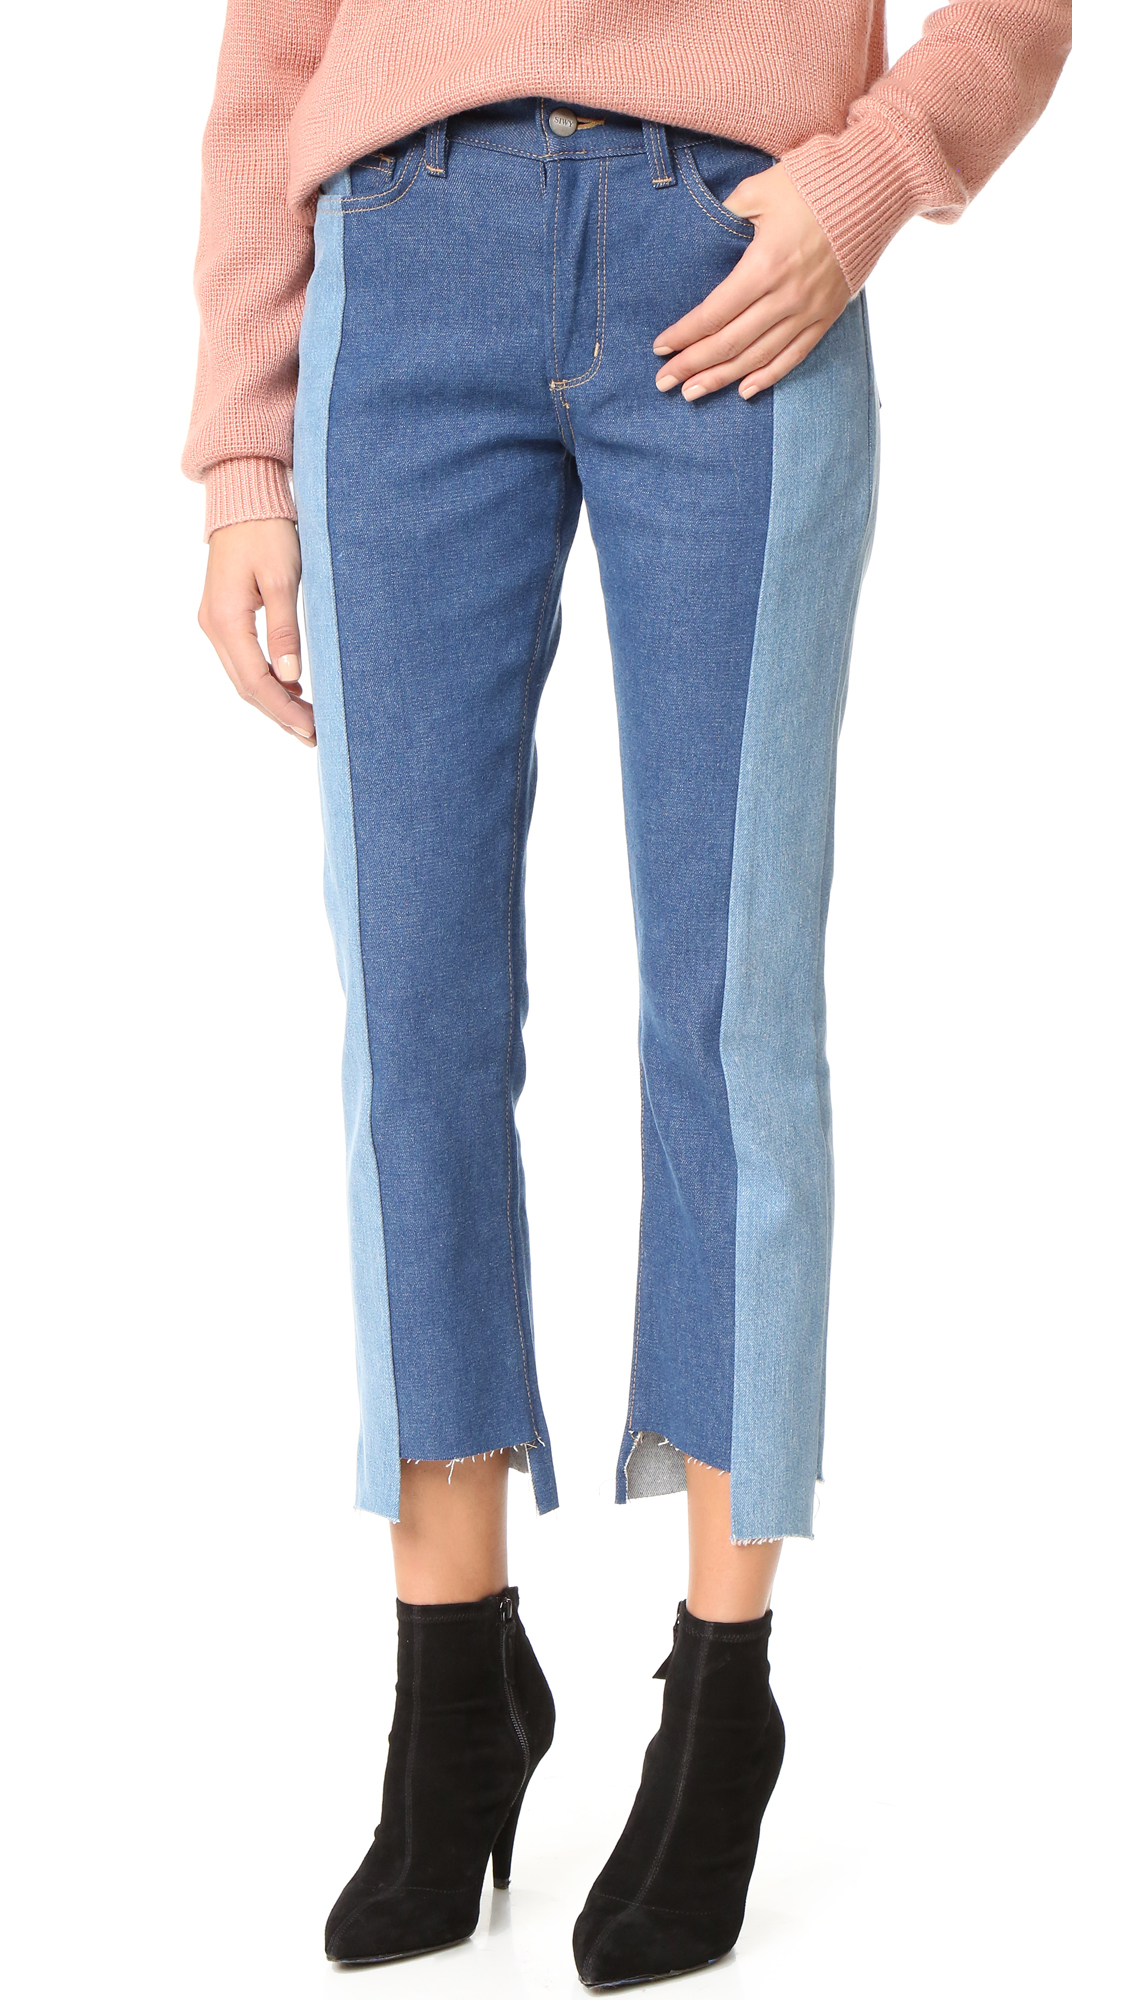 A raw, uneven hem adds an undone feel to these two tone, cropped Siwy jeans. 5 pocket styling and button fly. Fabric: Denim. 95.5% cotton/3% polyester/1.5% elastane. 60% cotton/40% lyocell. Wash cold. Made in the USA. Imported components. Measurements